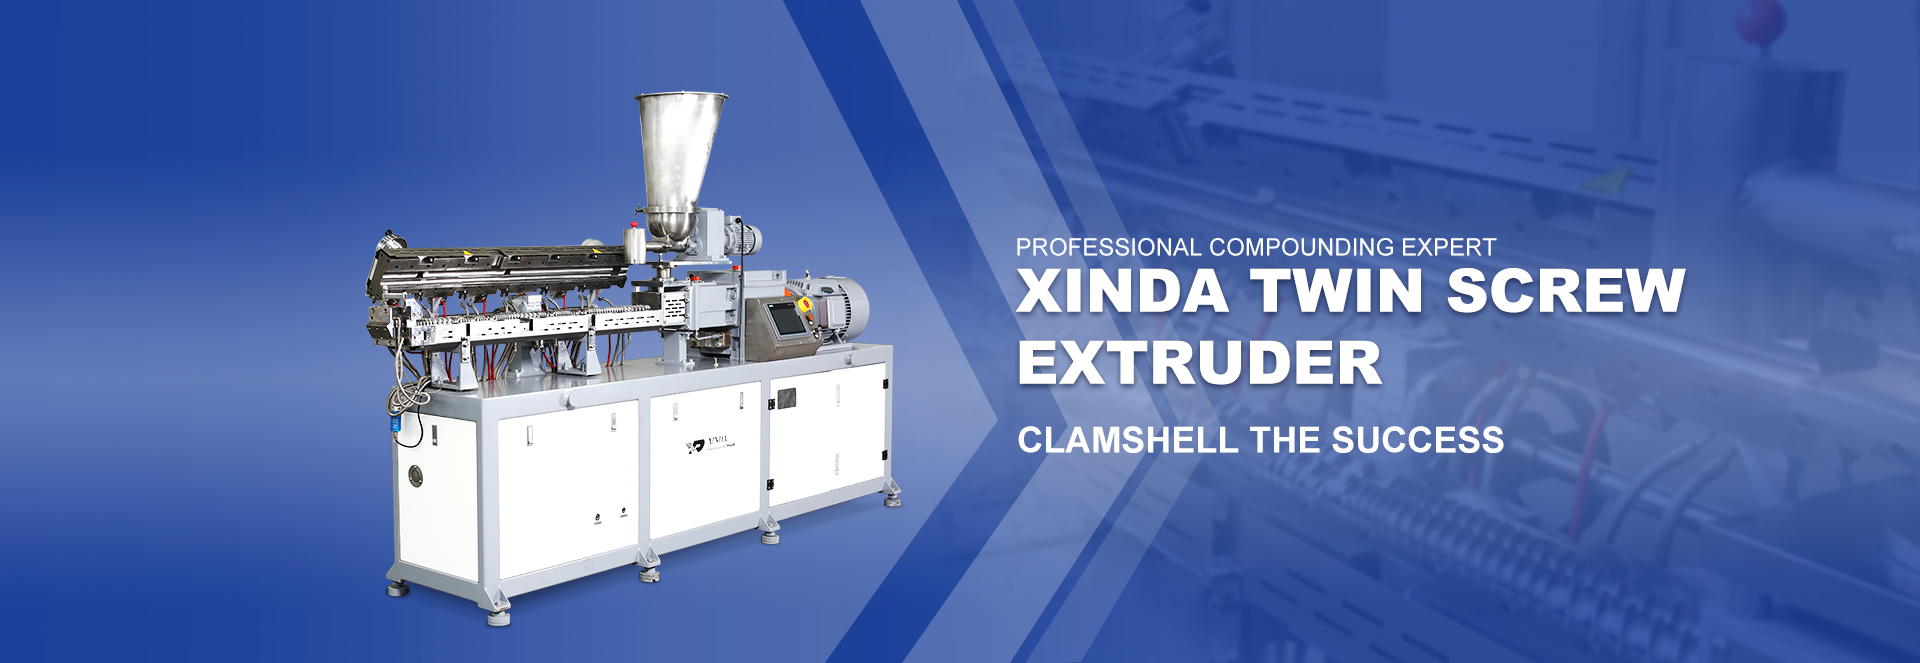 XINDA TWIN SCREW  EXTRUDER